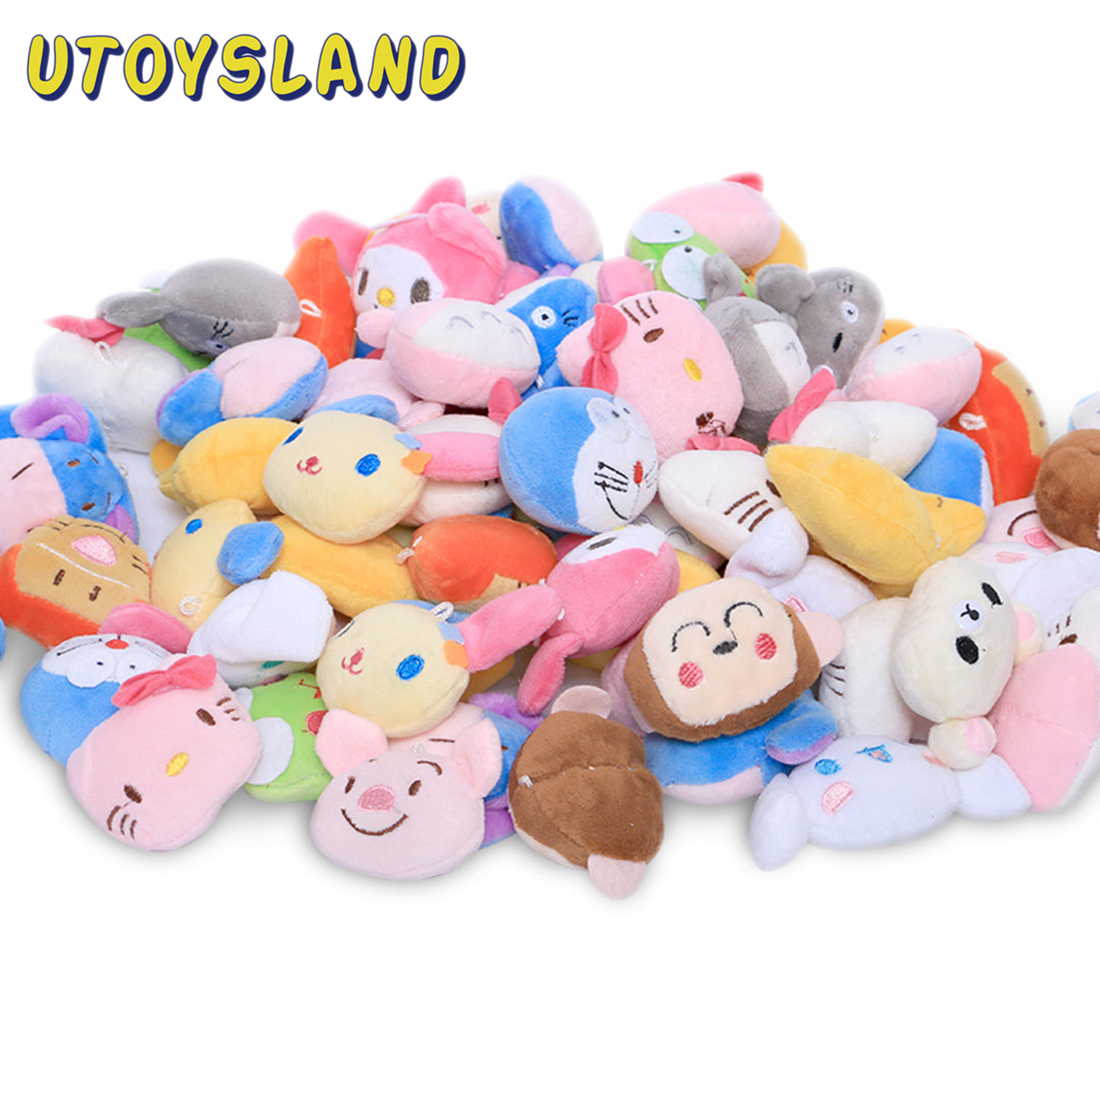 6Pcs Children Pretend Play Toy Mini Cute Plush Doll Stuffed Toys For Toy Claw Machine Soft Baby Kids Toys For Children Girl Boys